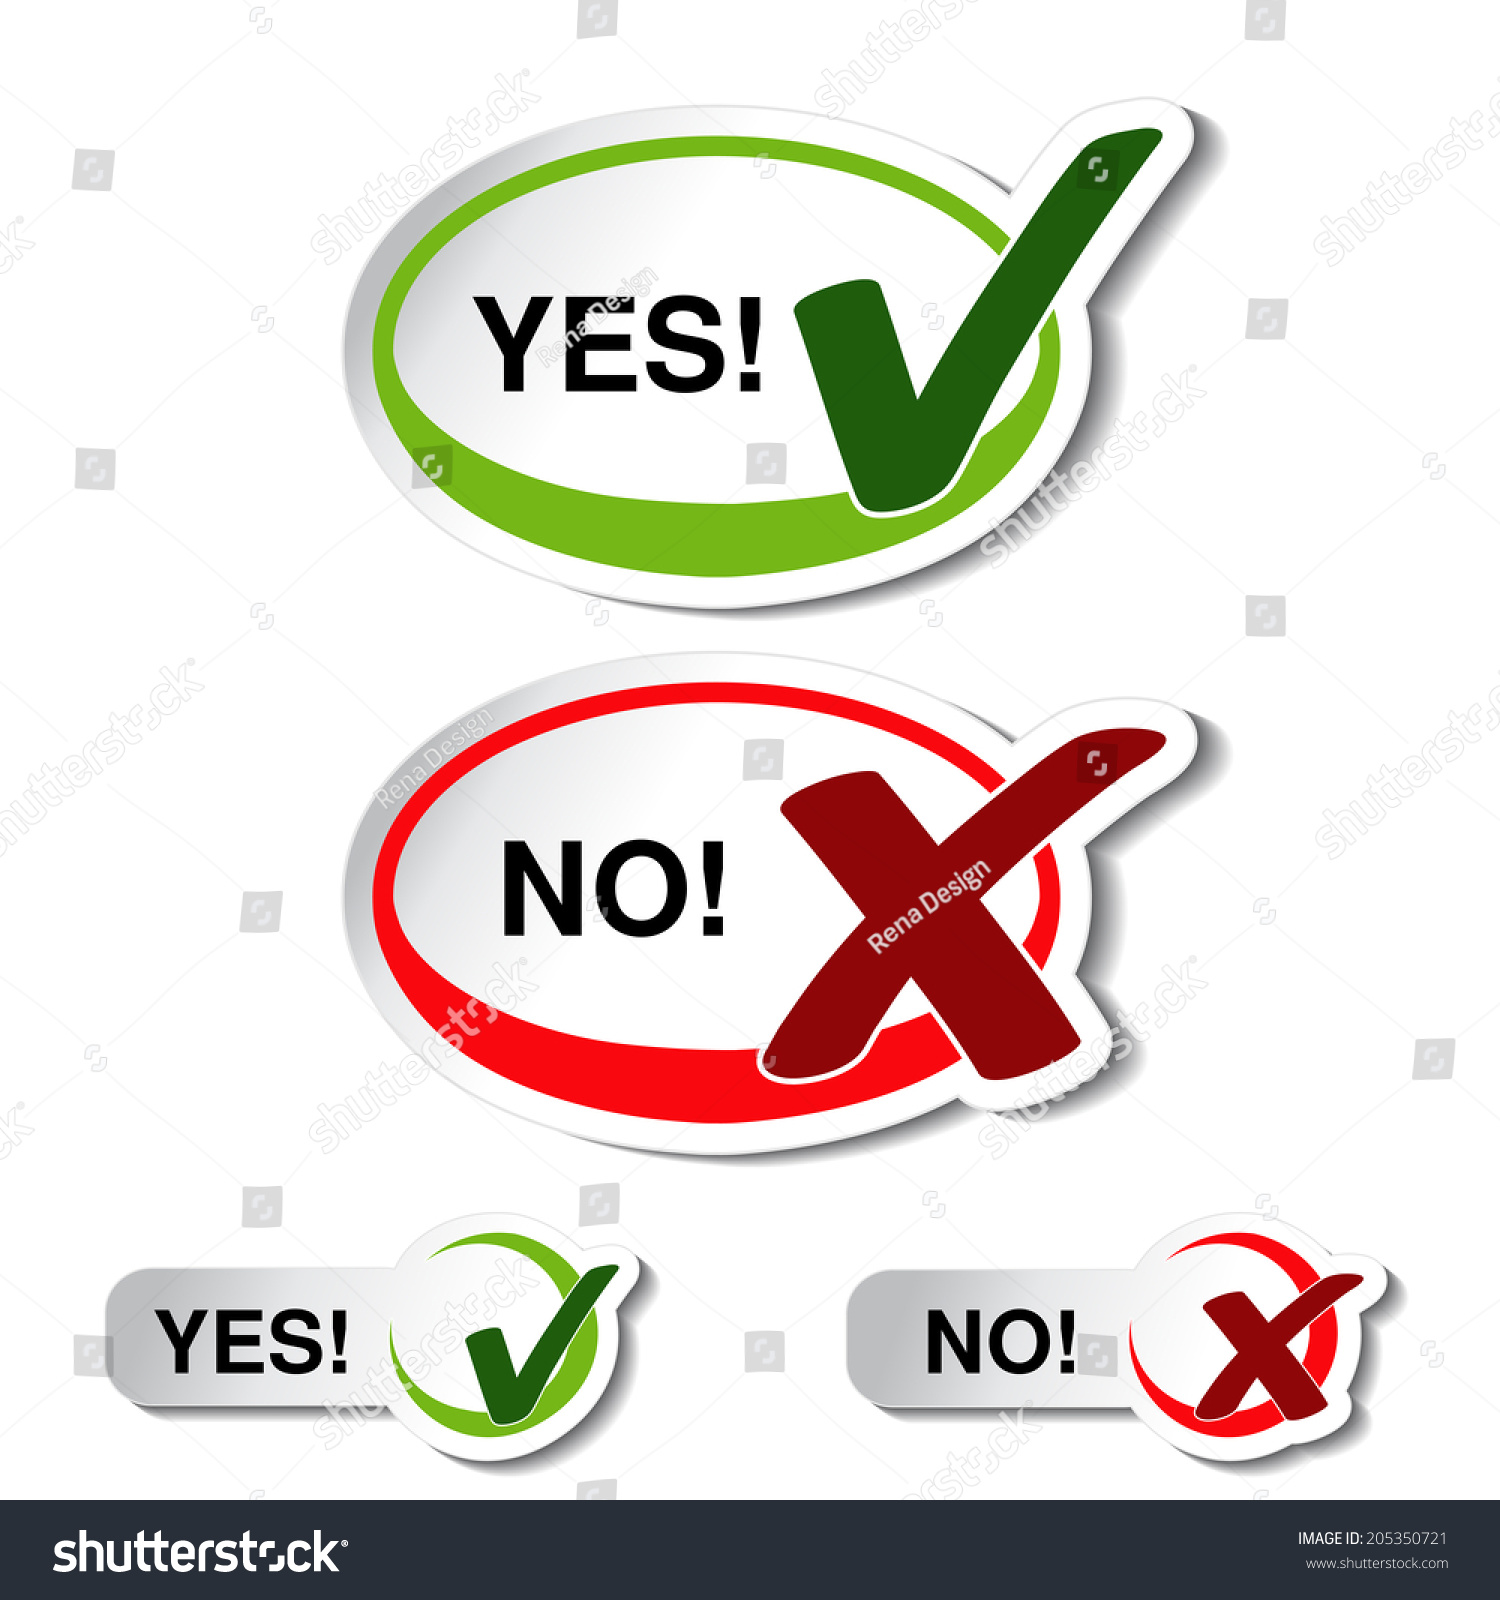 Oval Yes No Button Check Mark Stock Illustration 205350721